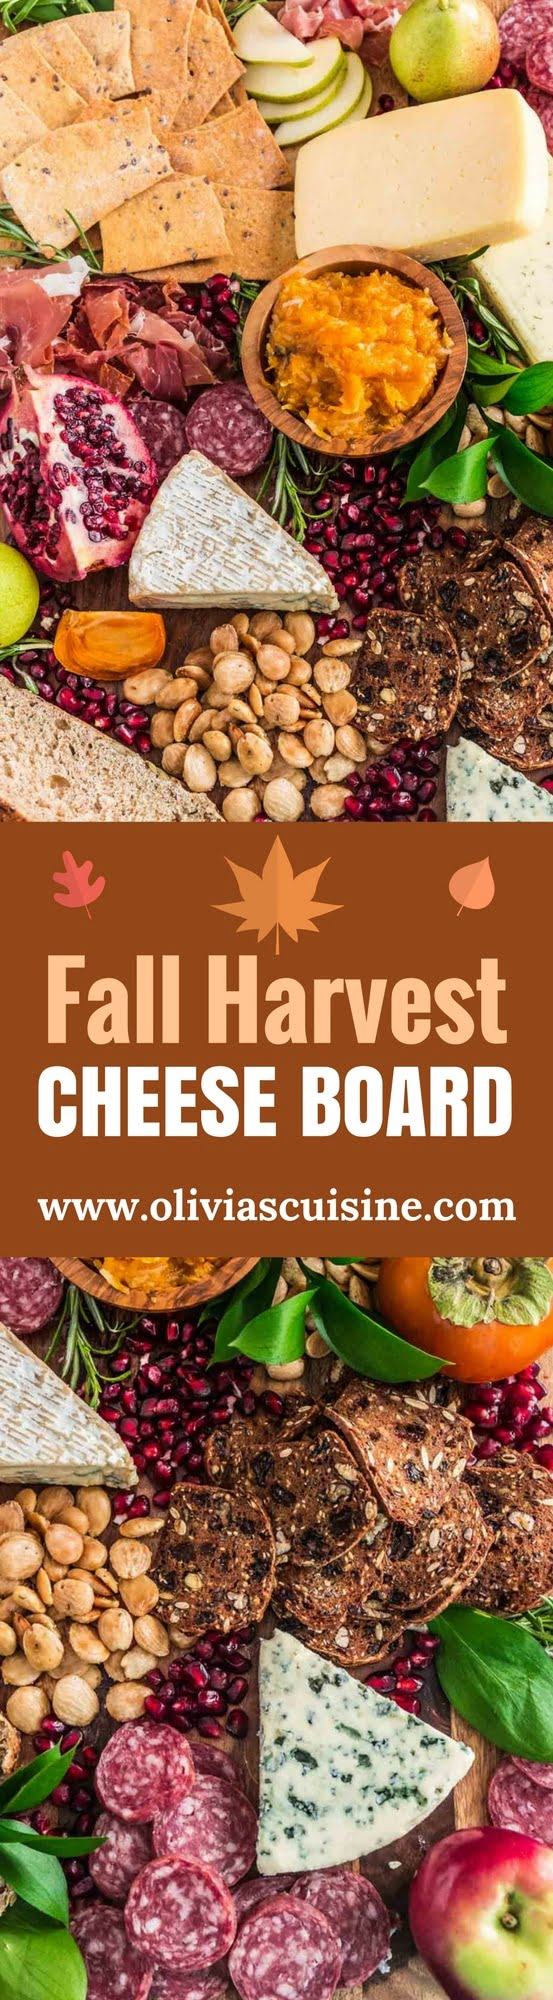 Fall Harvest Cheese Board | www.oliviascuisine.com | There's nothing easier and more reliable than a cheese board when hosting a party. With the Fall season upon us and Thanksgiving around the corner, I thought it would be fun to put together a tutorial on how to set up a beautiful Fall Harvest Cheese Board so you can wow your guests during the holiday season.